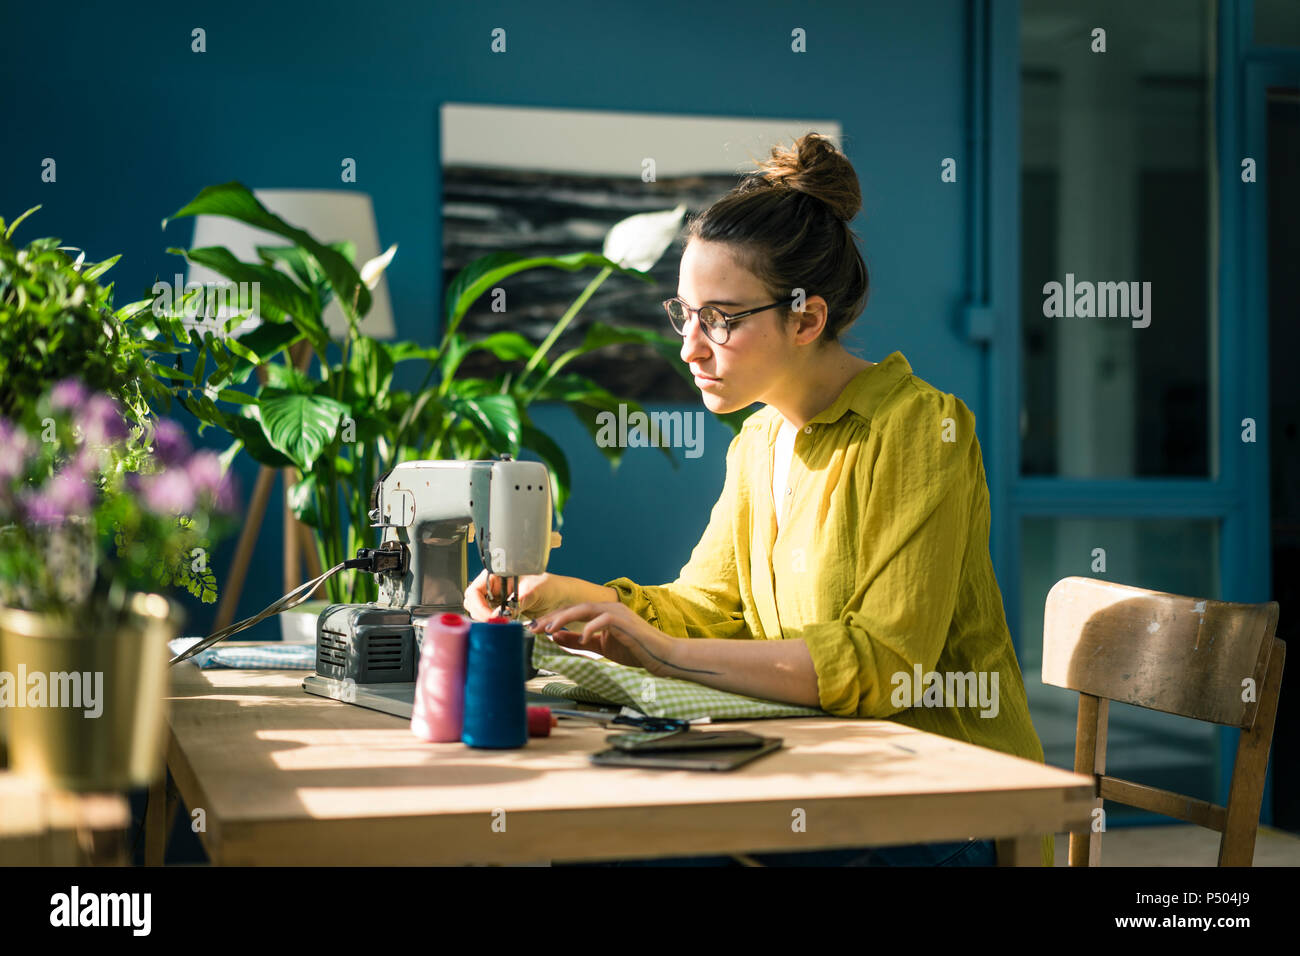 Fashion designer working with sewing machine in her studio - Stock Image